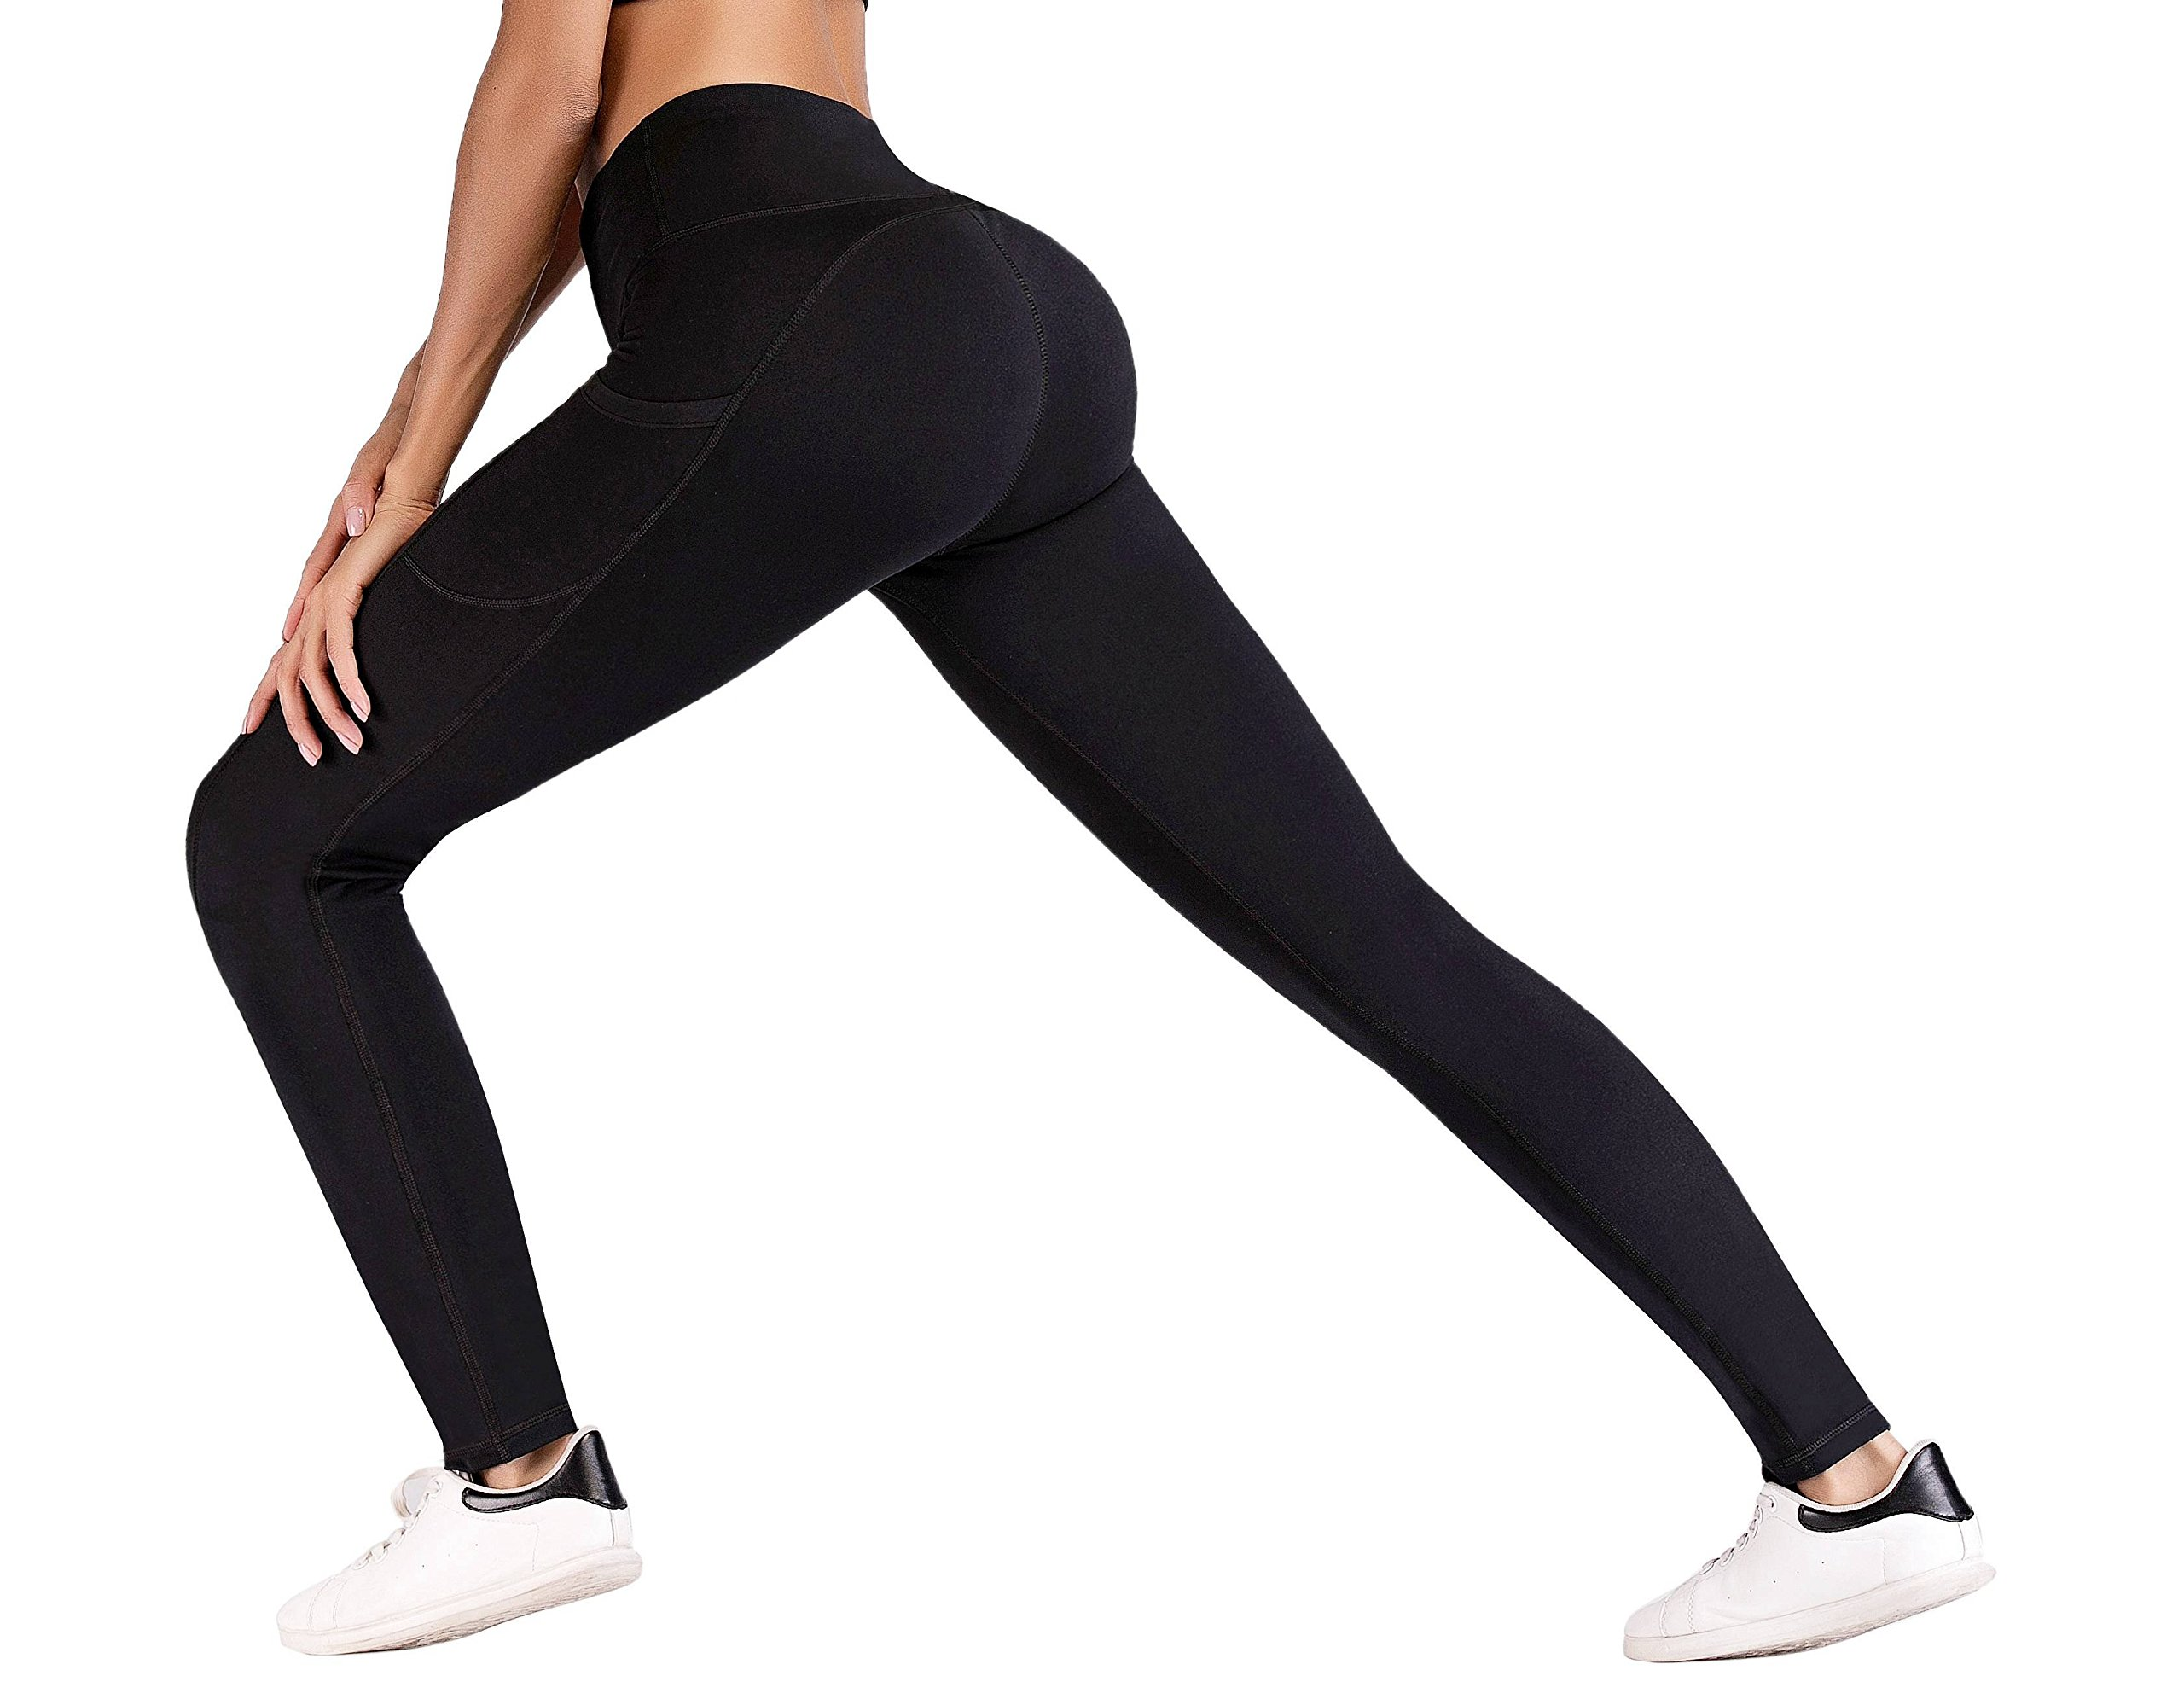 81jDR4 rmAL - IUGA Yoga Pants with Pockets, Workout Running Leggings with Pockets for Women